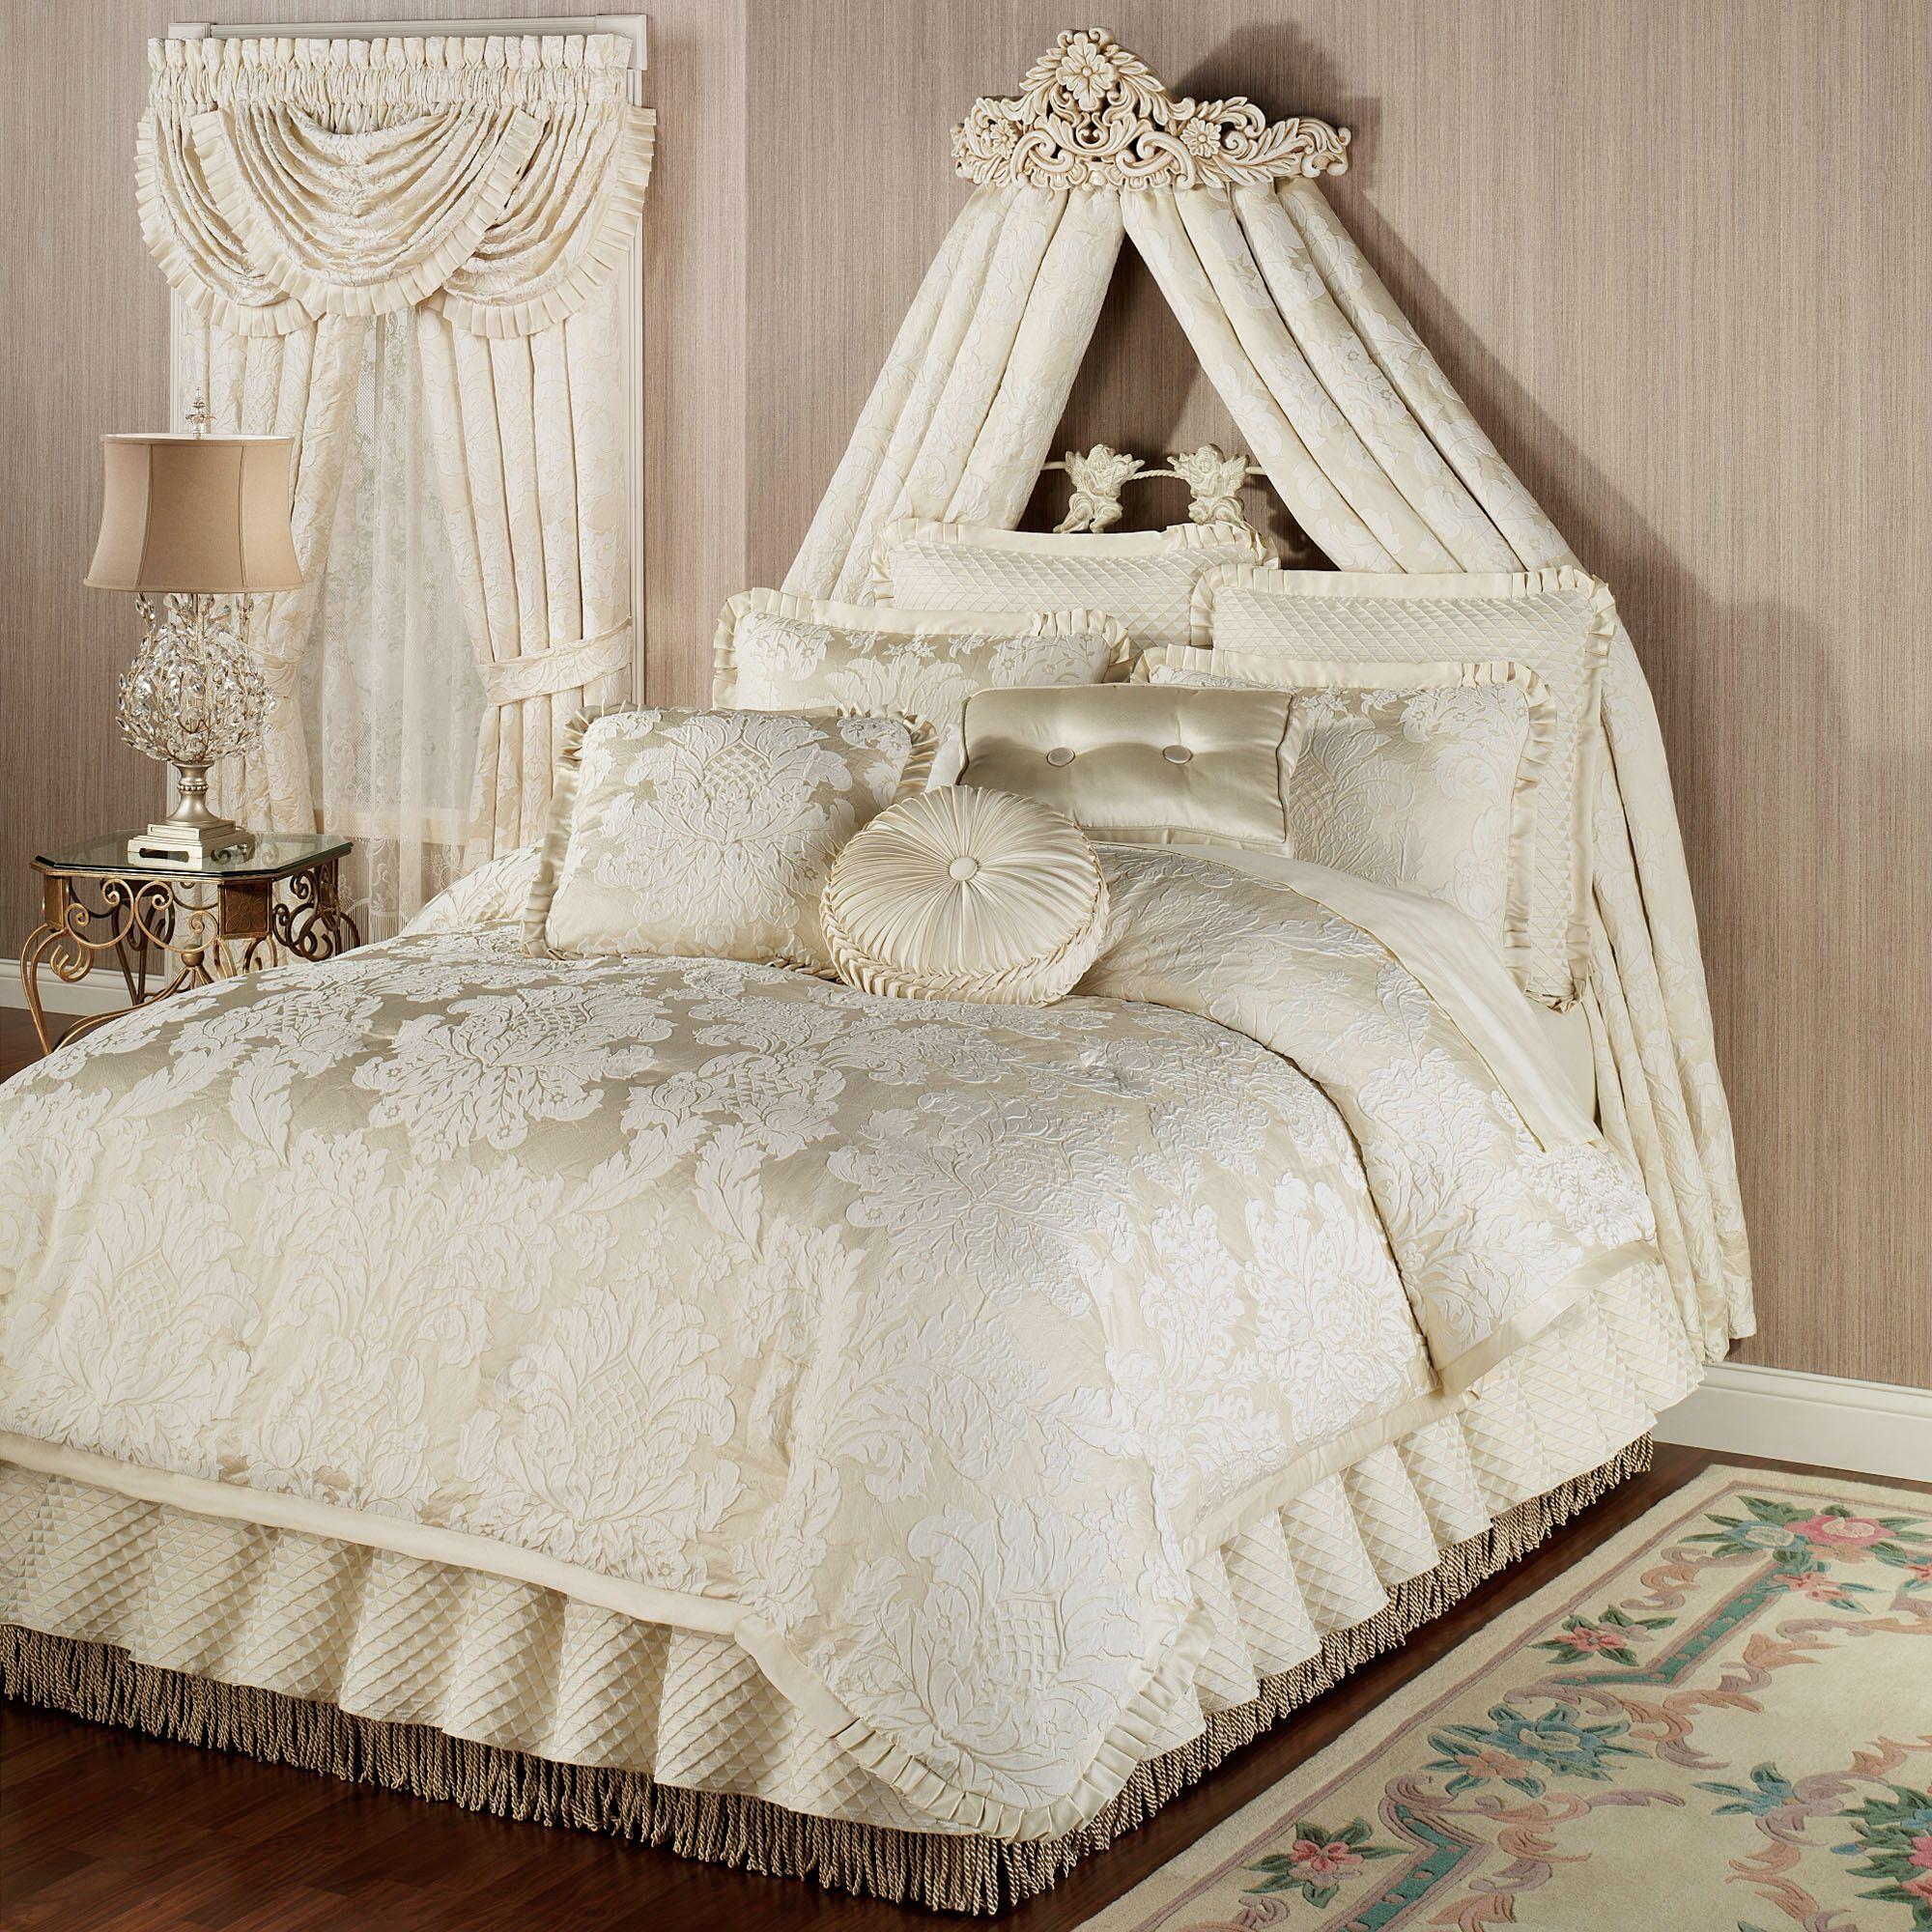 Excellent damask bedding for bed decorating ideas with damask bedding set and damask crib bedding